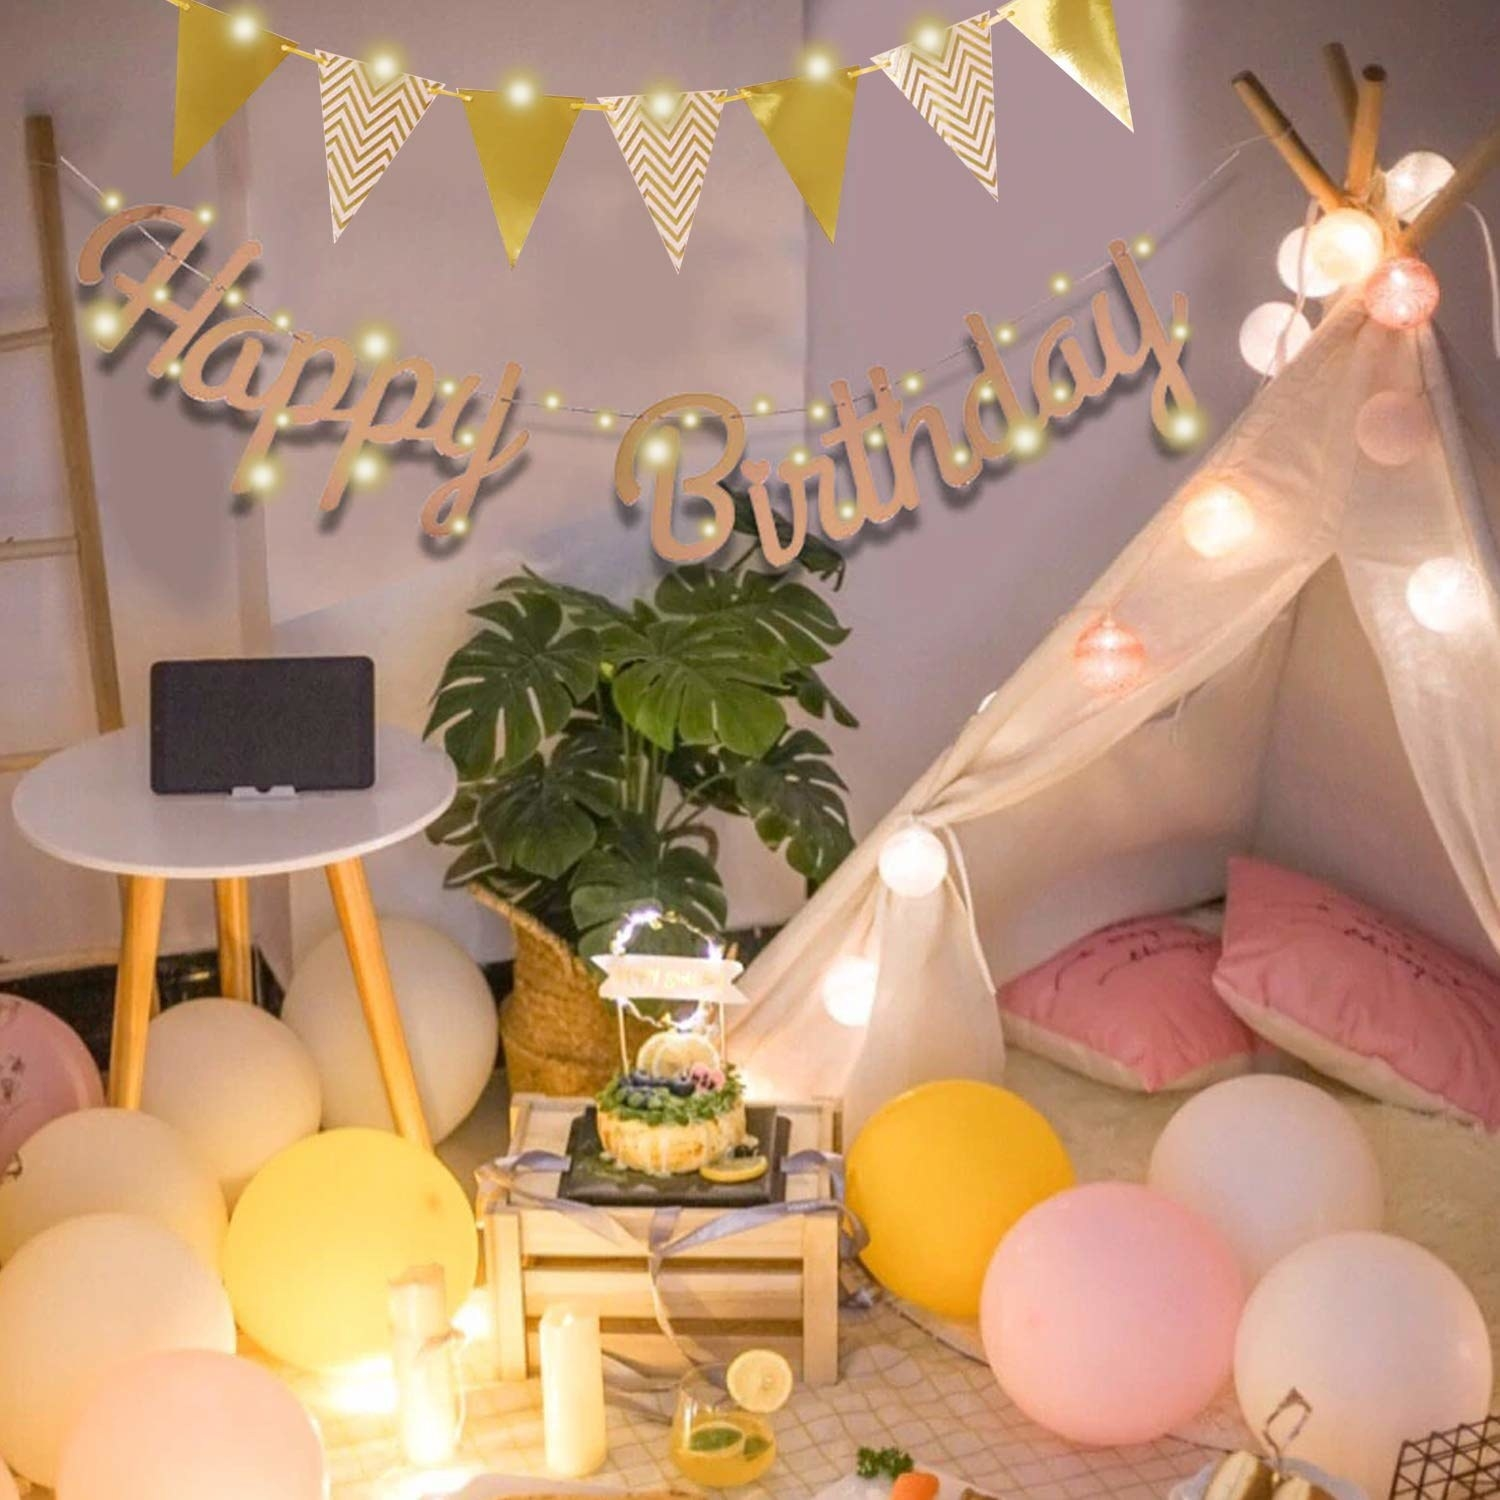 A room decorated with balloons, string lights and an LED 'Happy Birthday' banner